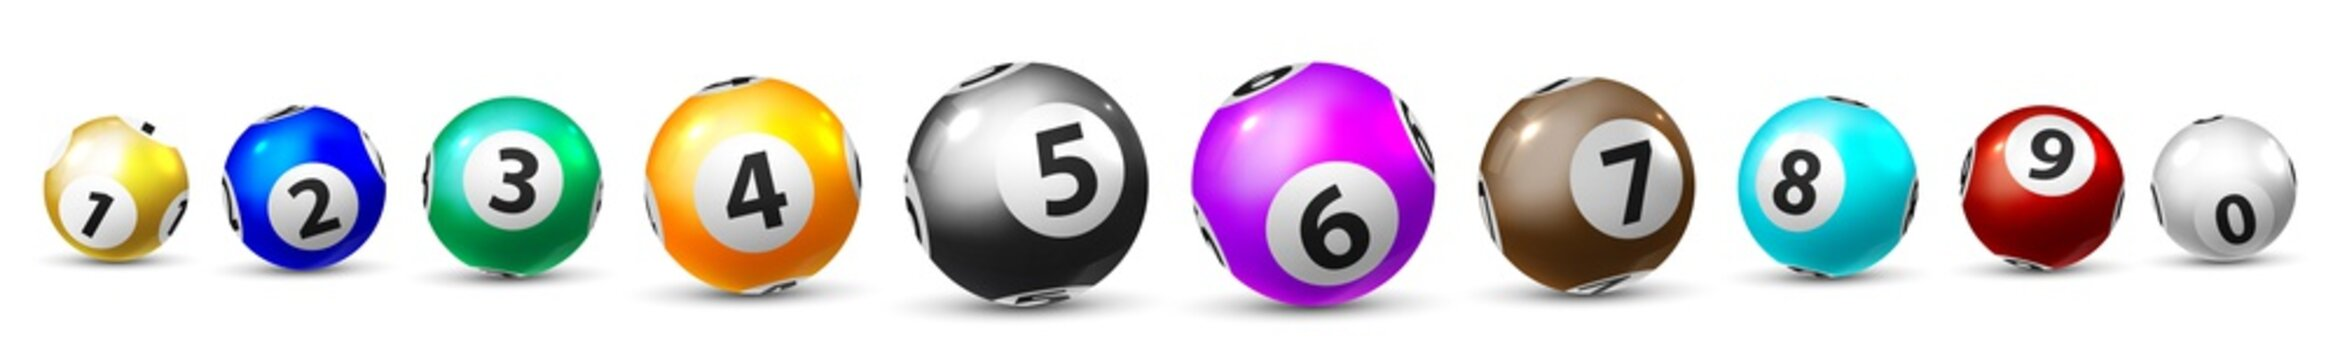 Bingo game balls. Isolated ten lottery ball icon set for leisure lottery sport game. Realistic shiny sphere bingo balls with numbers. Casino, luck opportunity in gambling